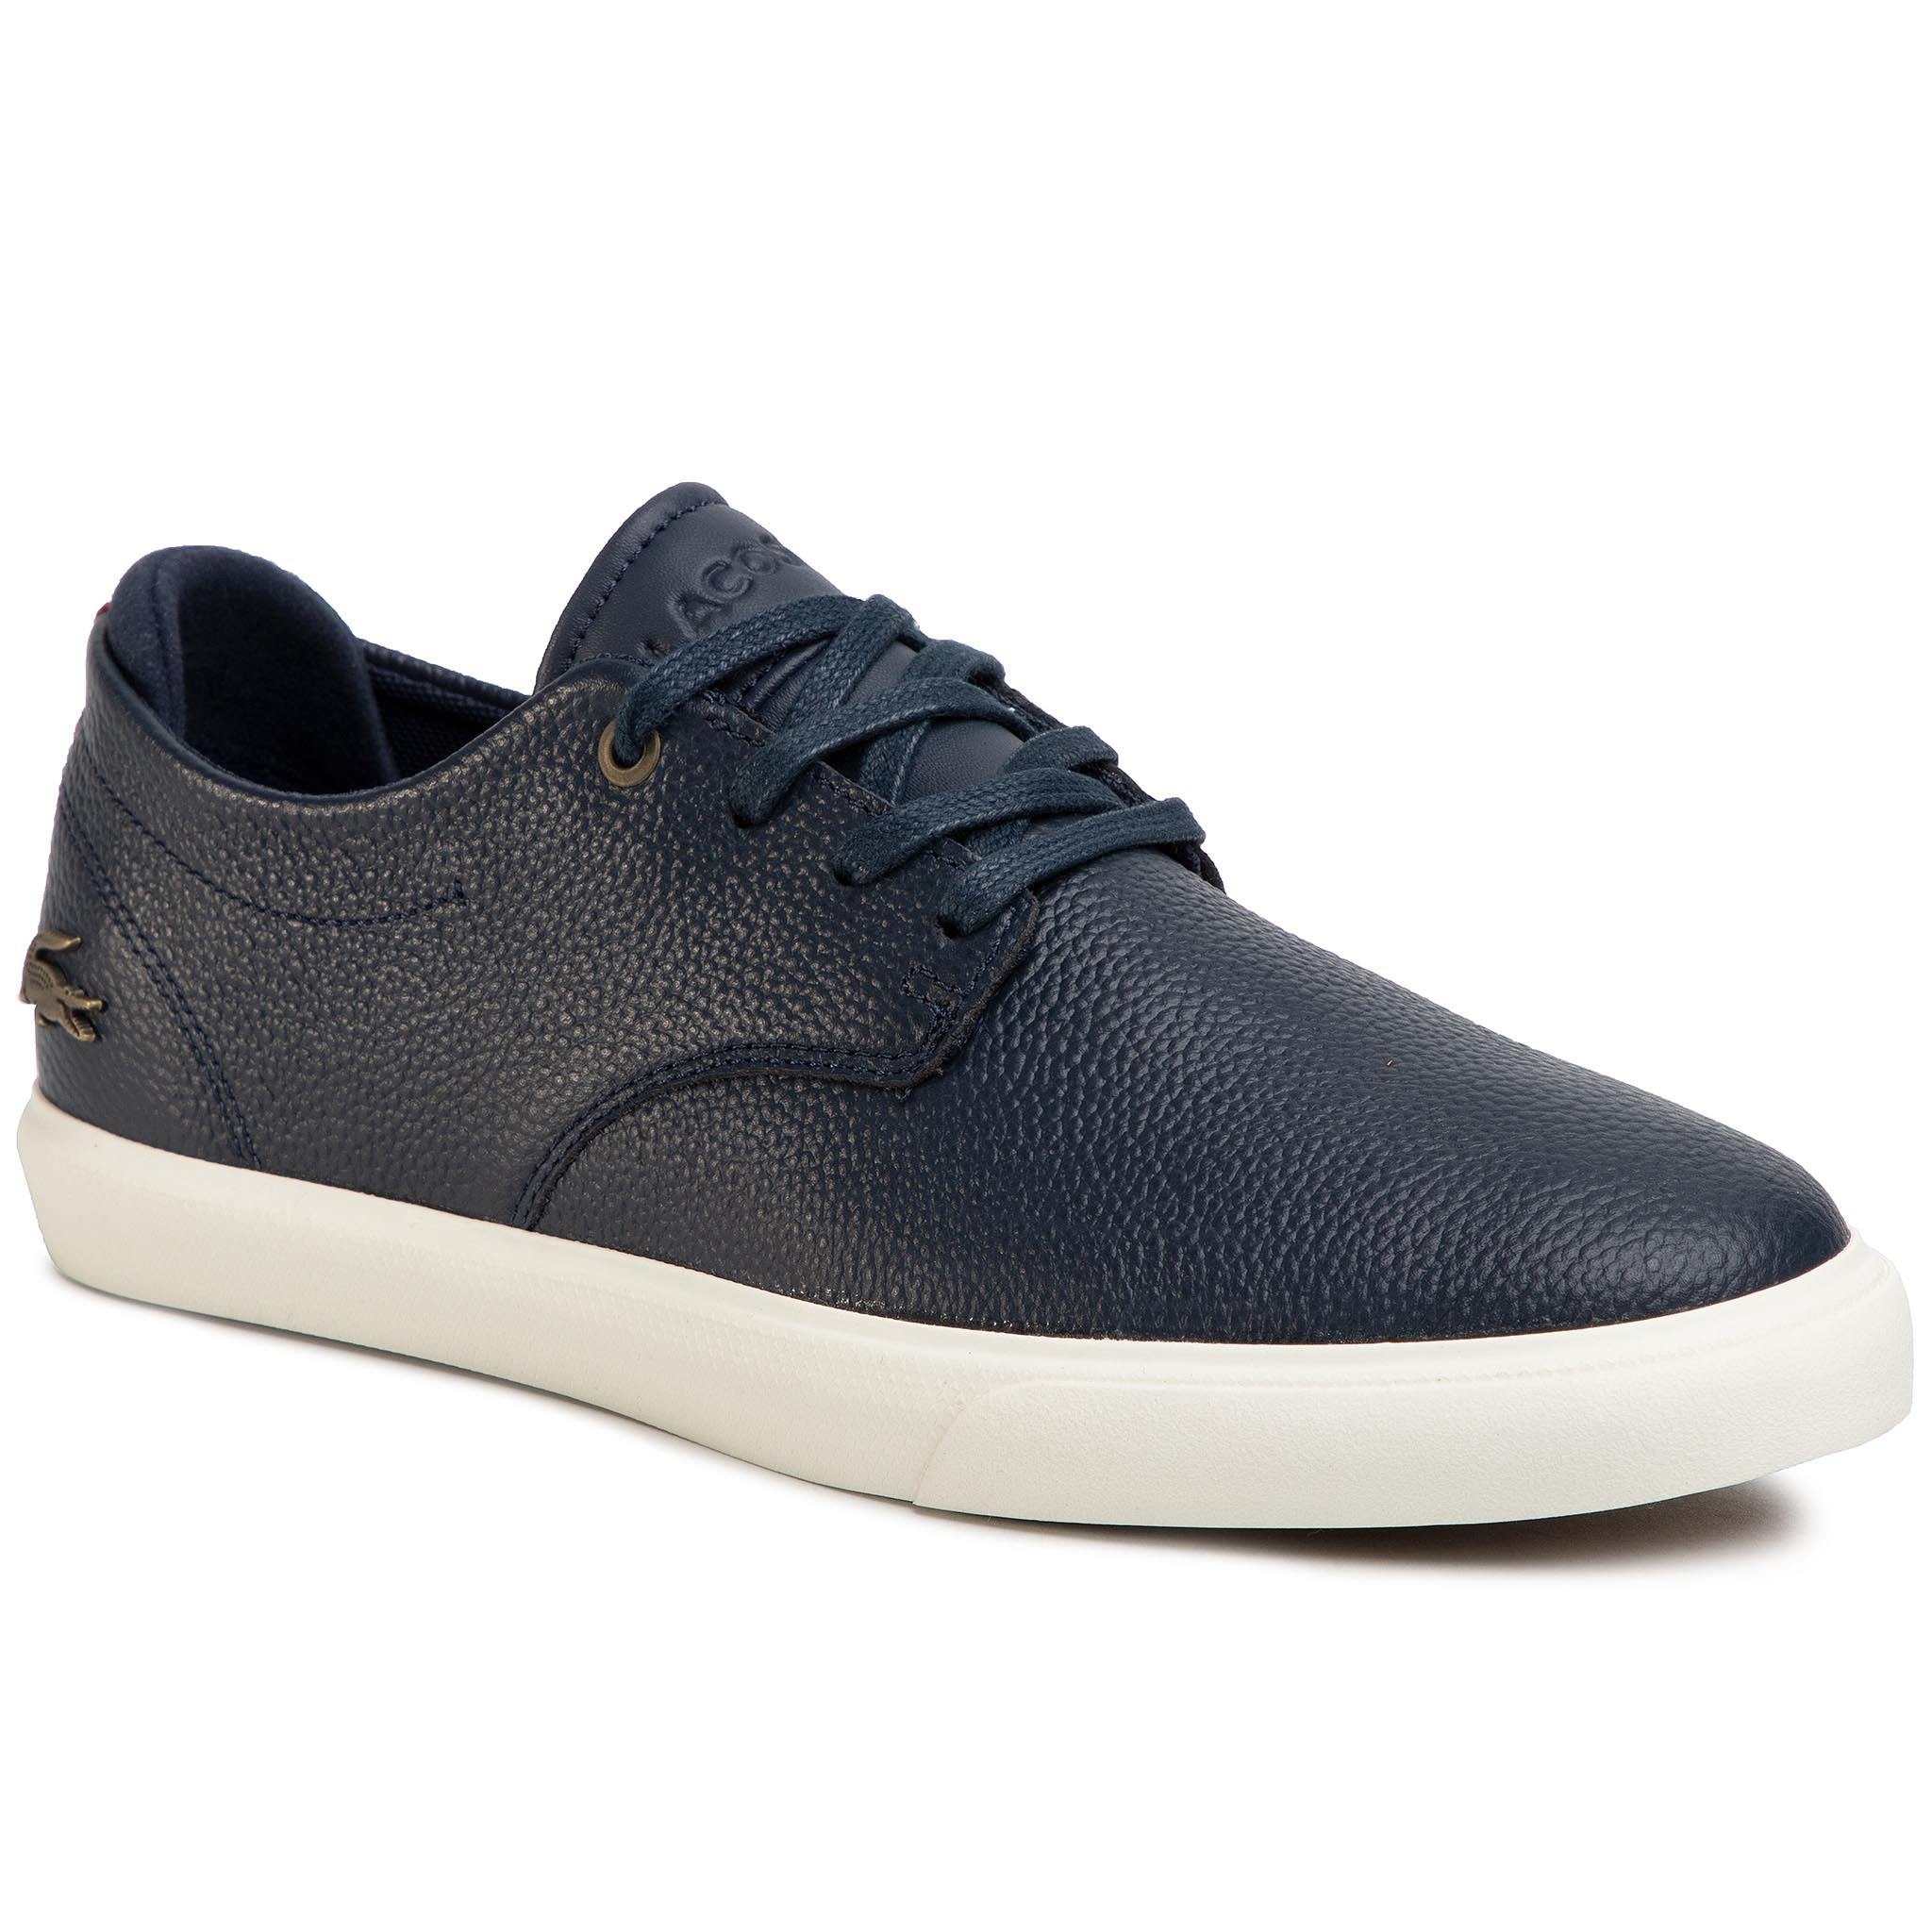 Sneakers LACOSTE - Esparre 120 2 Cma 7-39CMA00255A5 Nvy/Dk Red